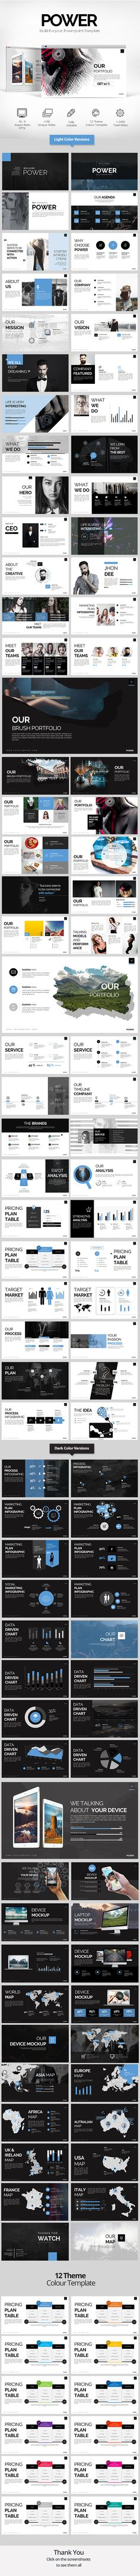 Power Powerpoint Presentation Template. Download here…